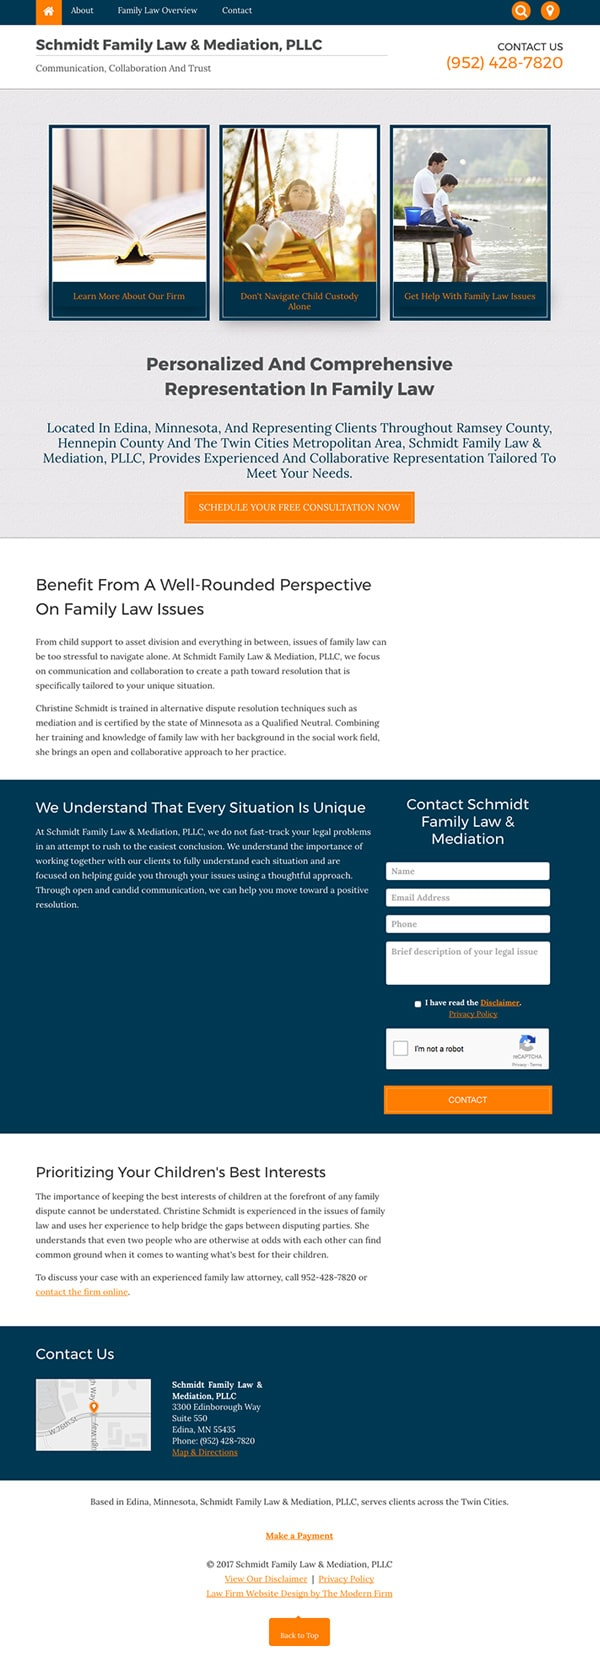 Law Firm Website for Schmidt Family Law & Mediation, PLLC